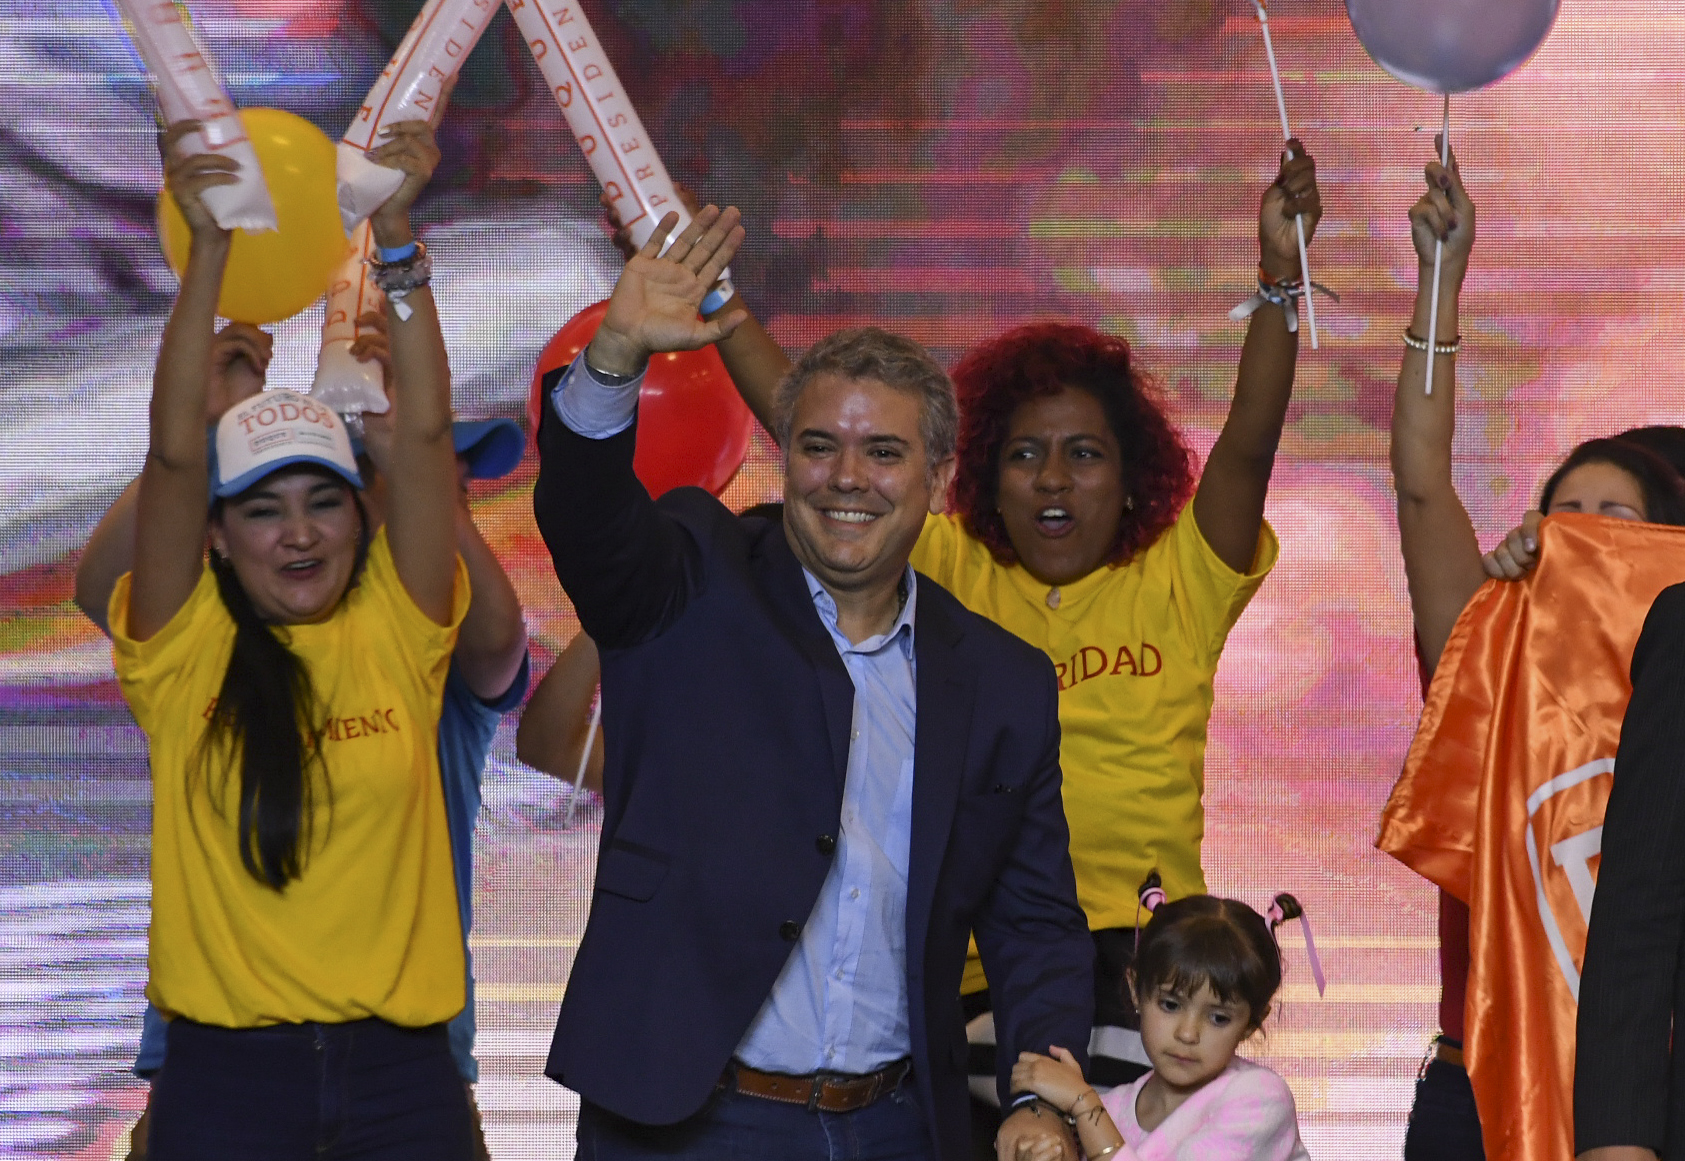 Colombian presidential candidate Ivan Duque, for the Democratic Centre party, holds his daughter's hand, as he waves to supporters in Bogota, after winning the first round of the Colombian presidential election on May 27, 2018.